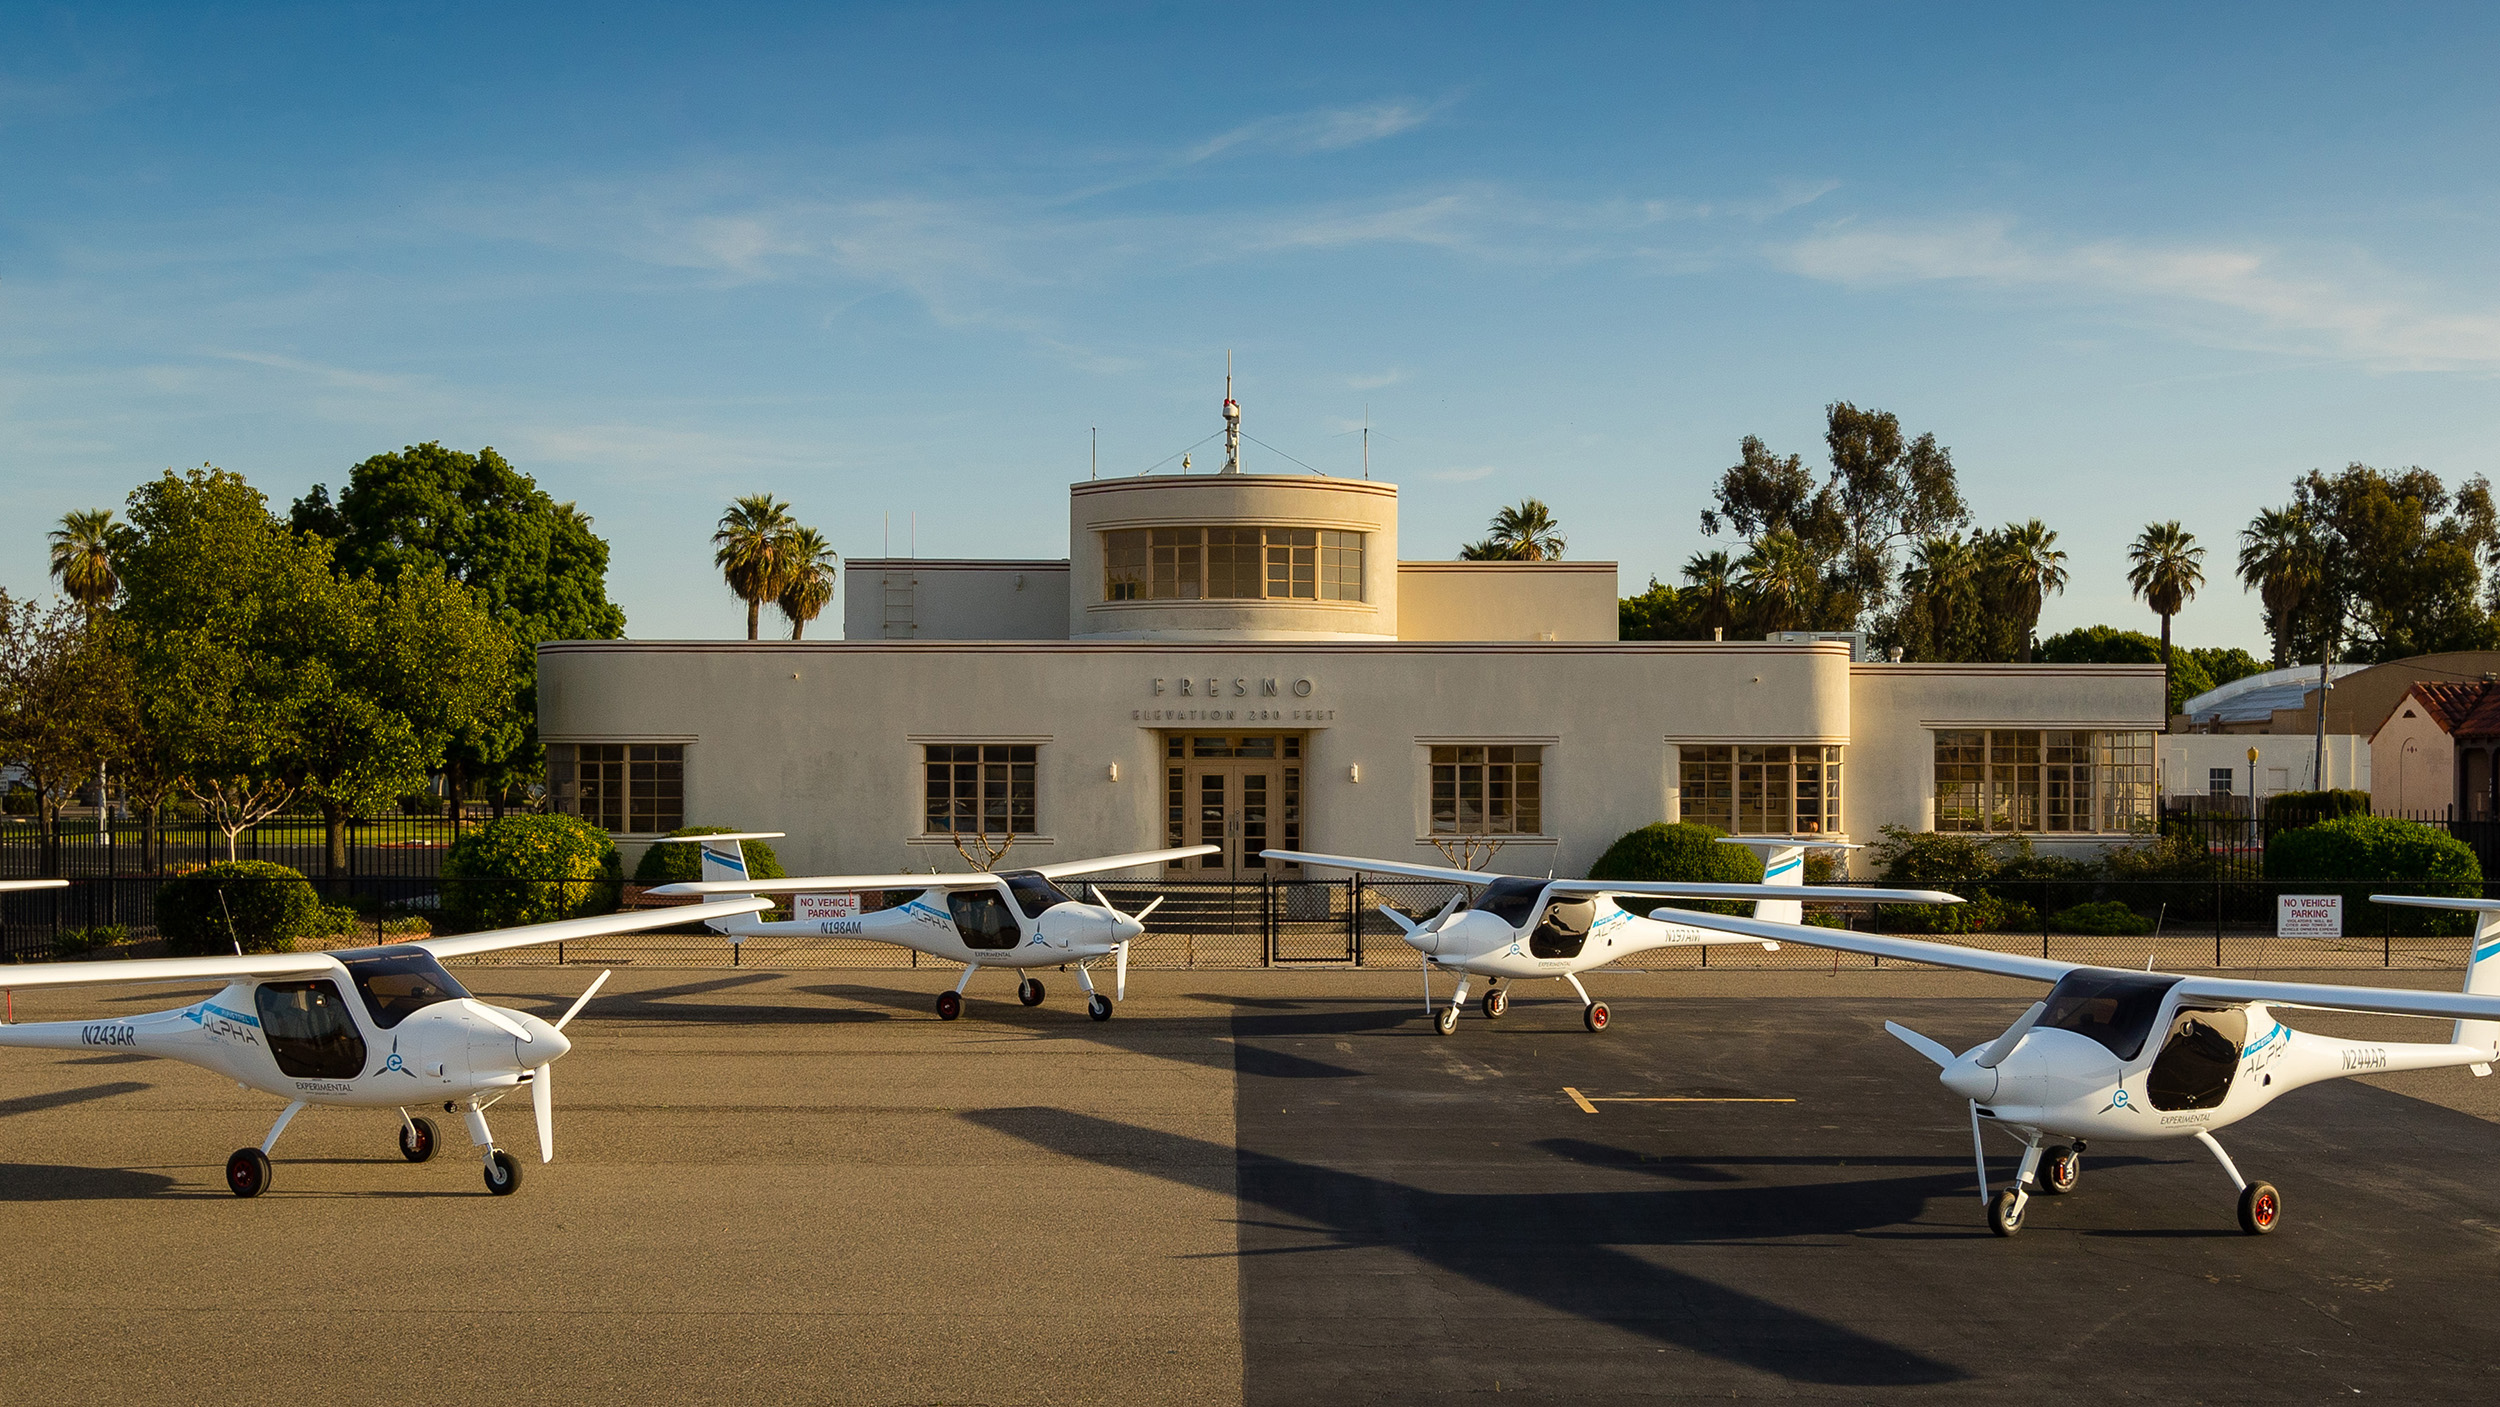 Four Pipistrel Alpha Electro aircraft are now being tested in California's San Joaquin Valley, with the goal of validating electric propulsion in the flight training environment. Officials celebrated their arrival April 17 with a ceremony at Fresno Chandler Executive Airport. Photo by Douglass Fletcher Sisk, courtesy of the Sustainable Aviation Project.